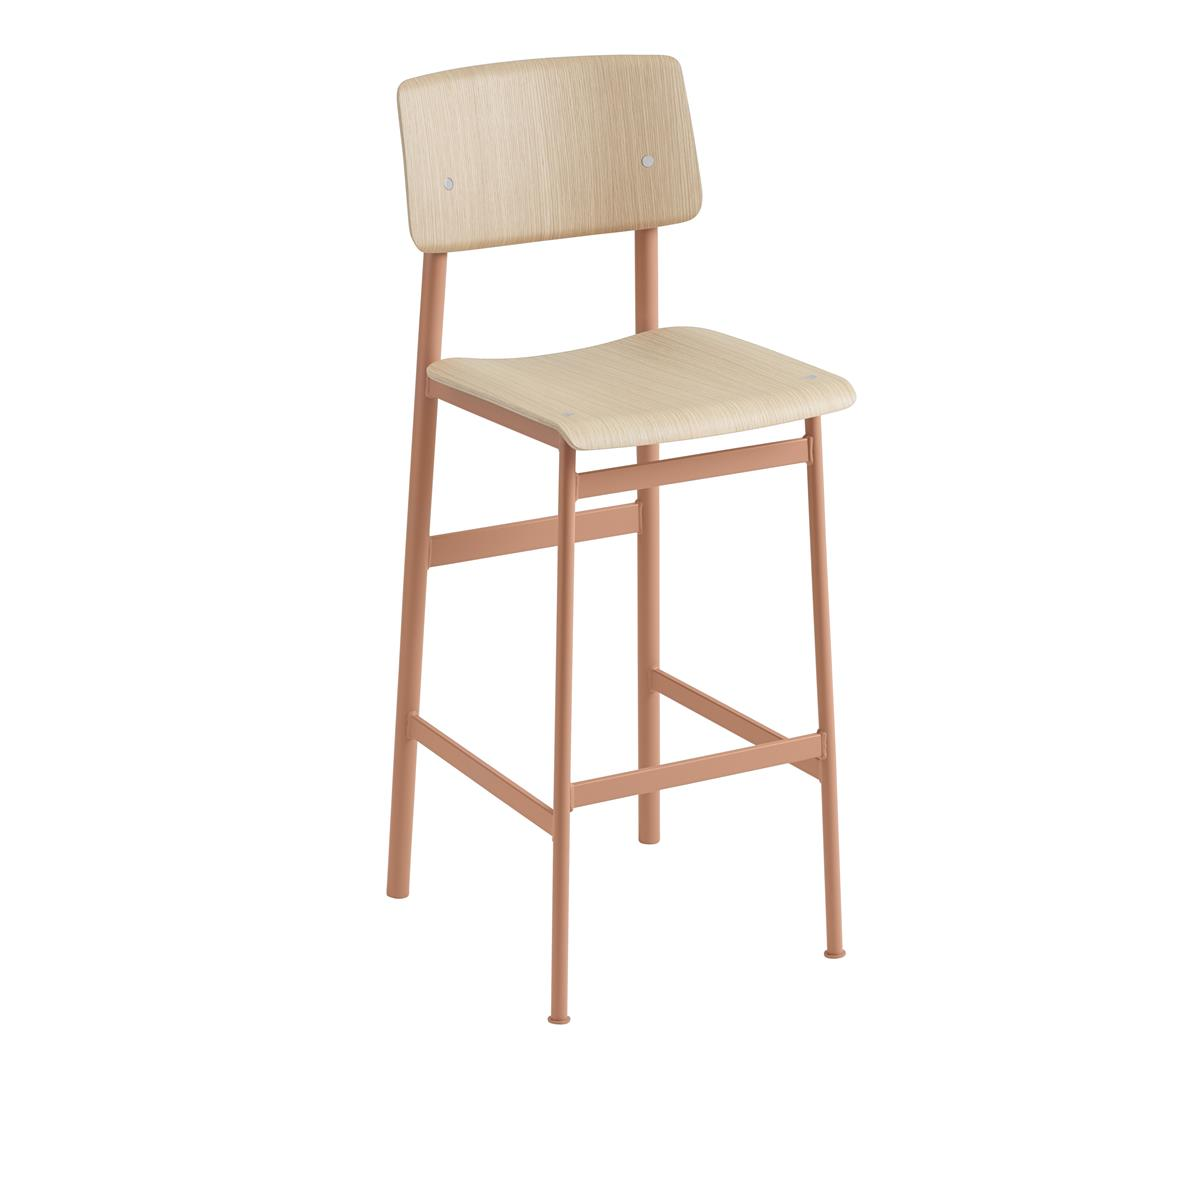 Loft Bar Stool H75 - Dusty Rose & Oak